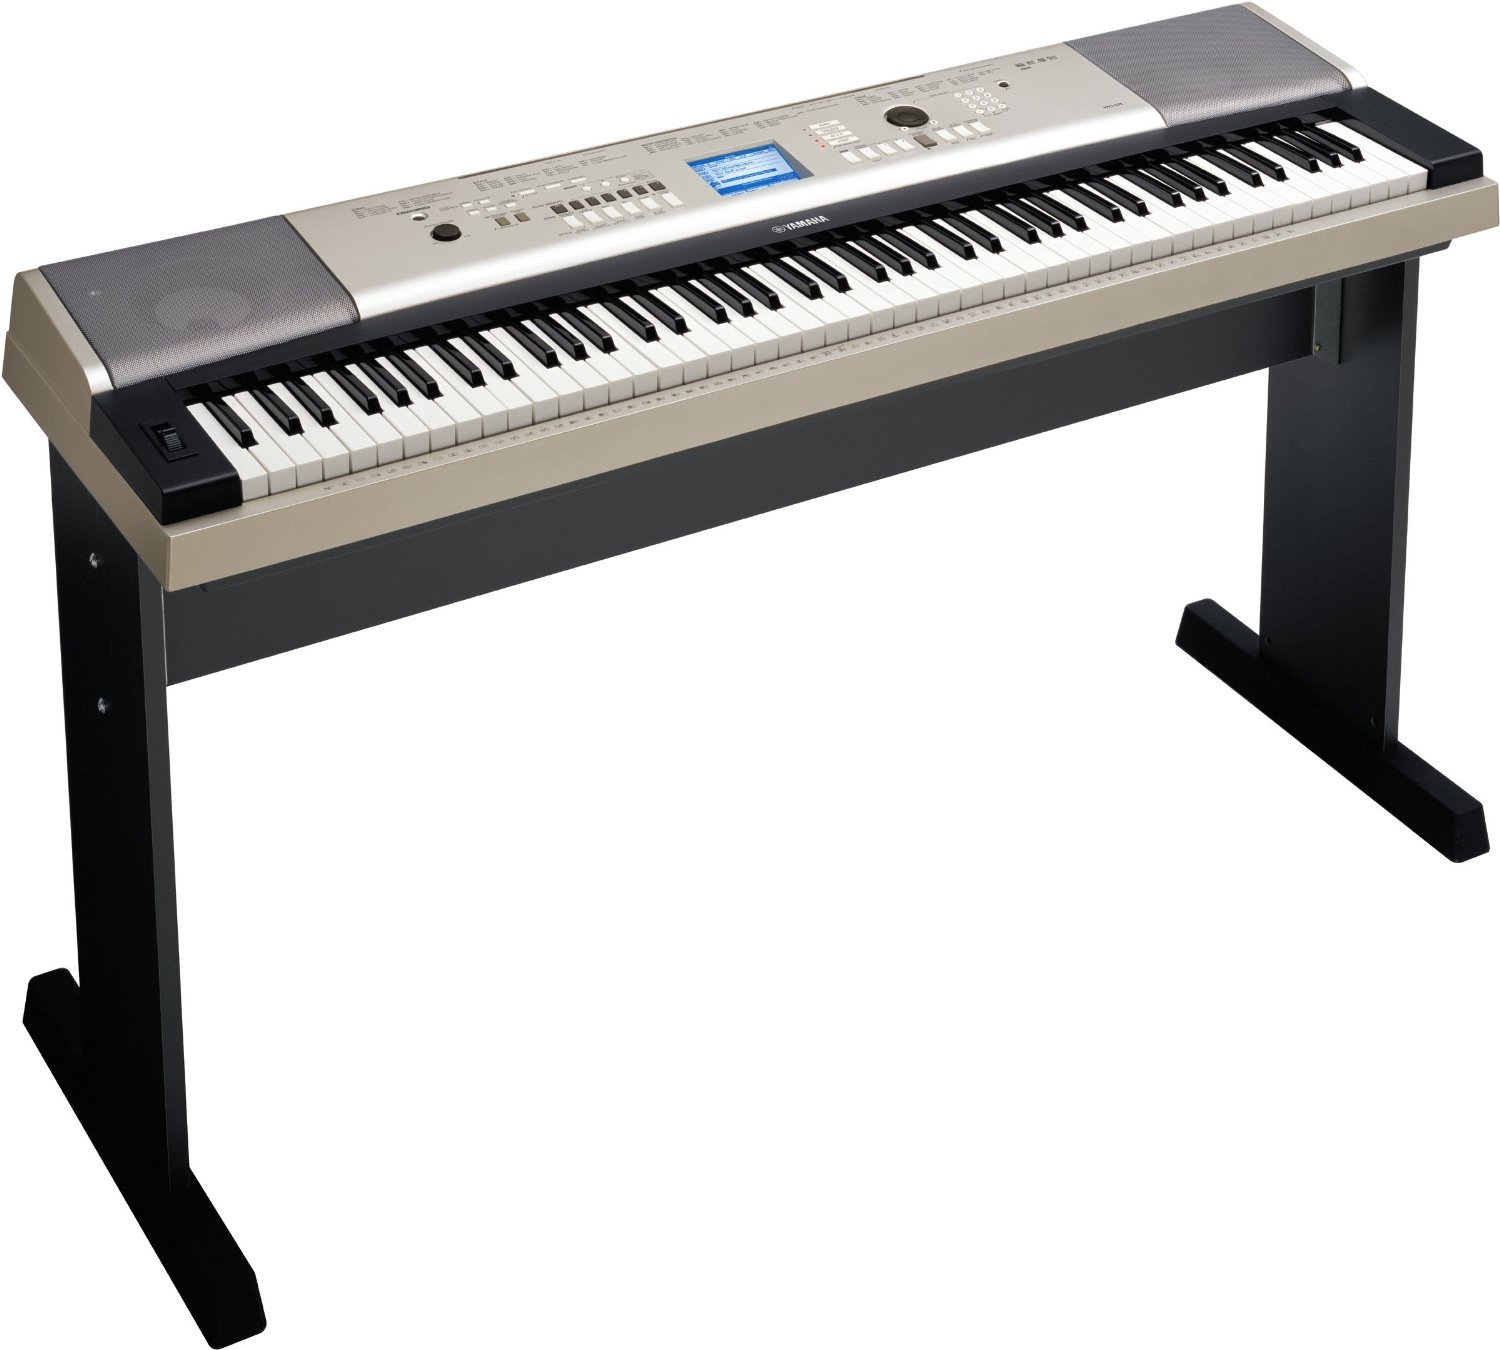 Yamaha YPG 535 Review